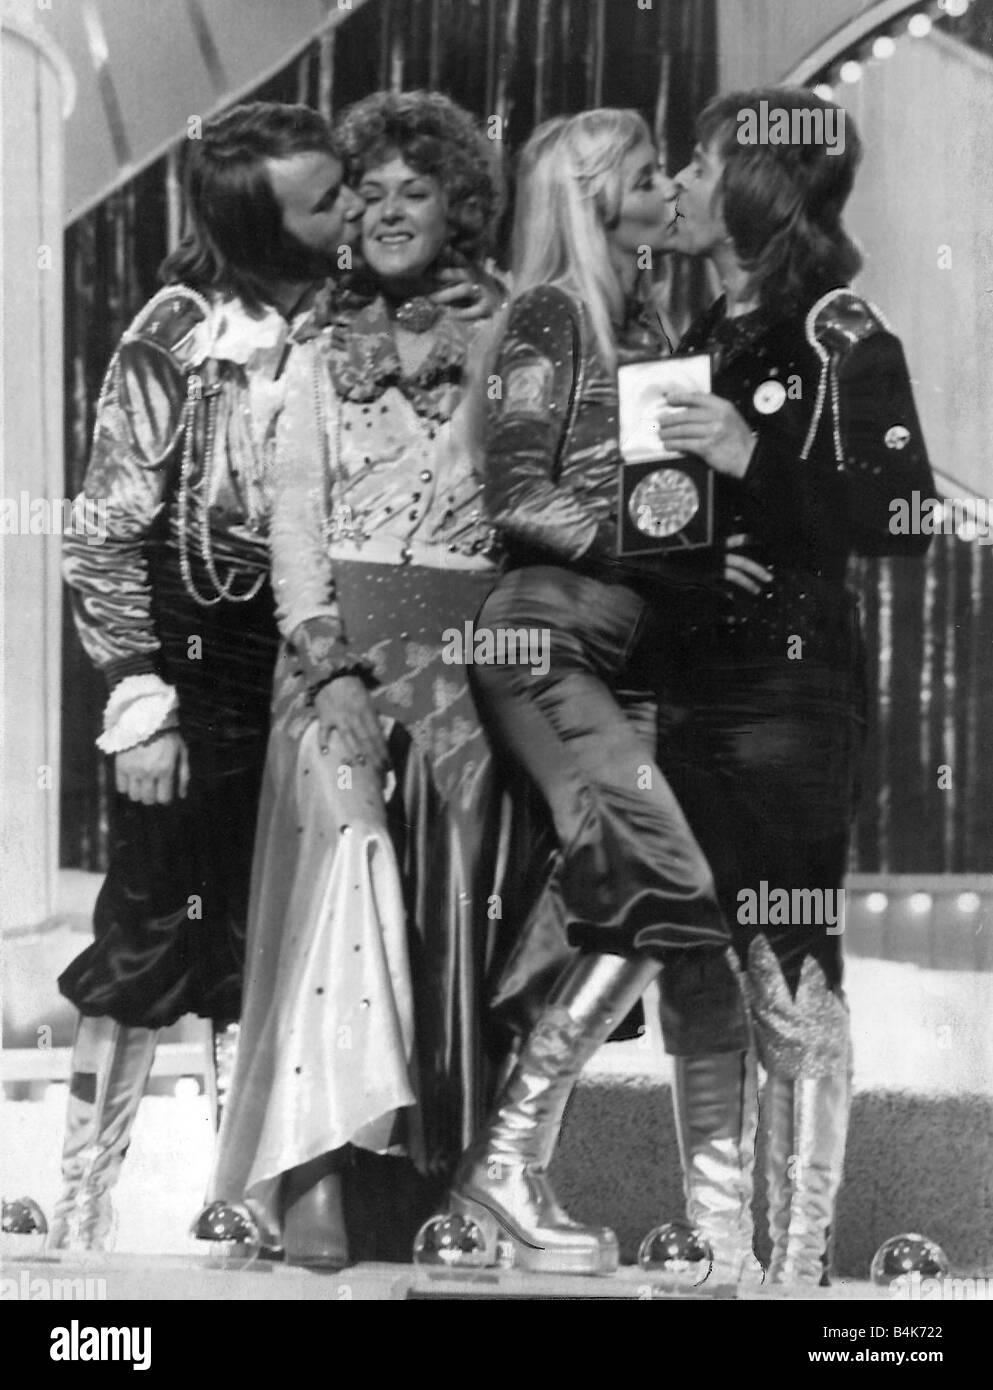 abba win the 1974 eurovision song contest 1974 in brighton for